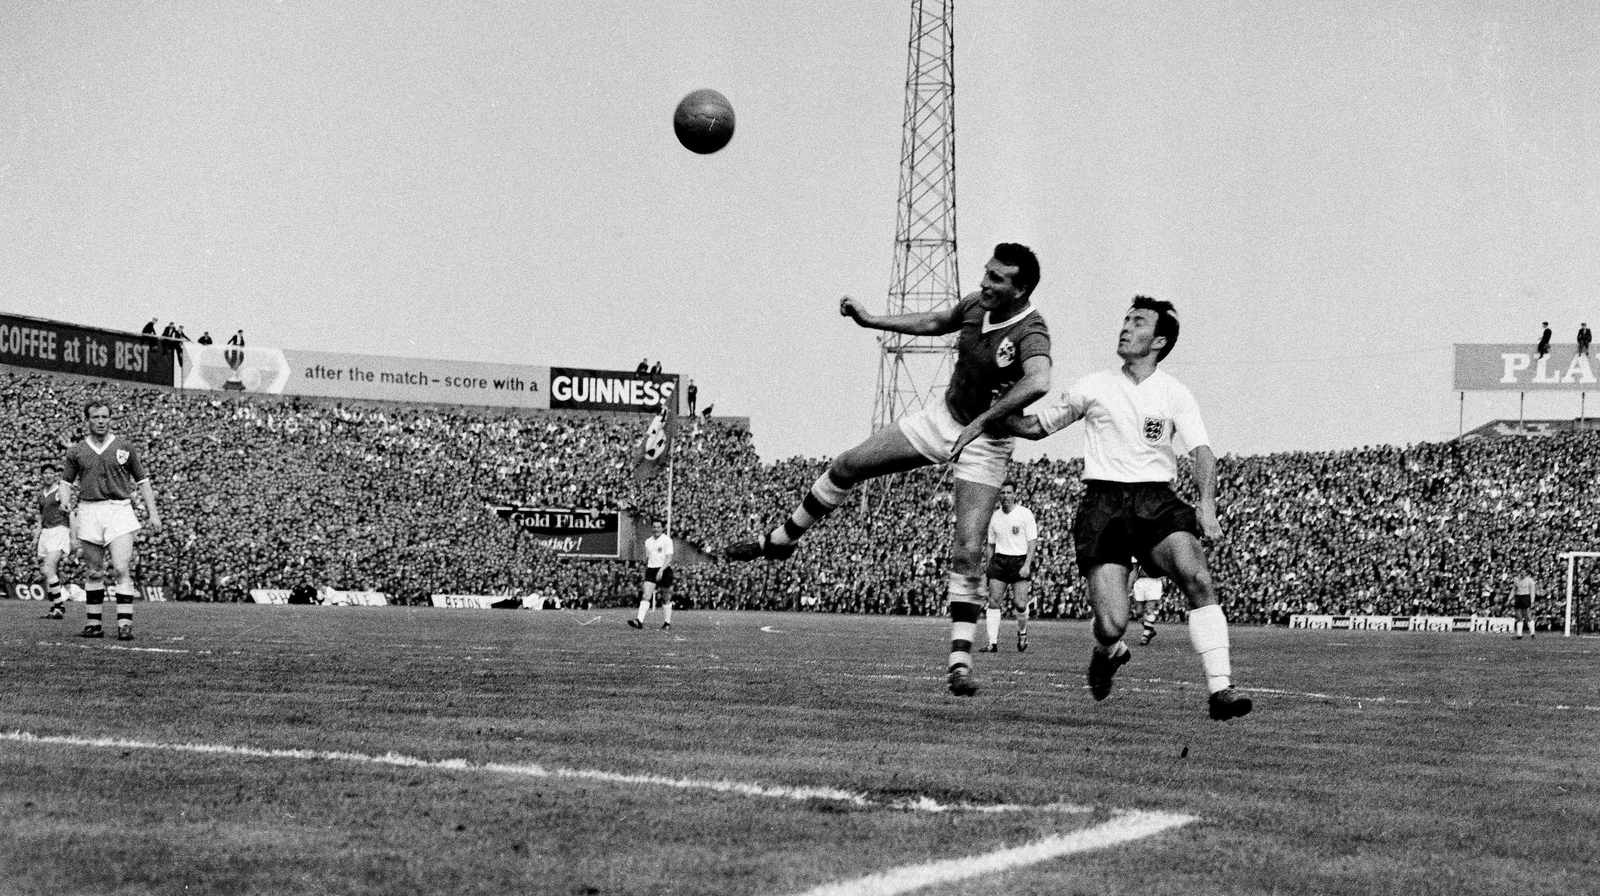 Image - Noel Cantwell in action against Jimmy Greaves in an Ireland-England friendly at Dalymount 1964